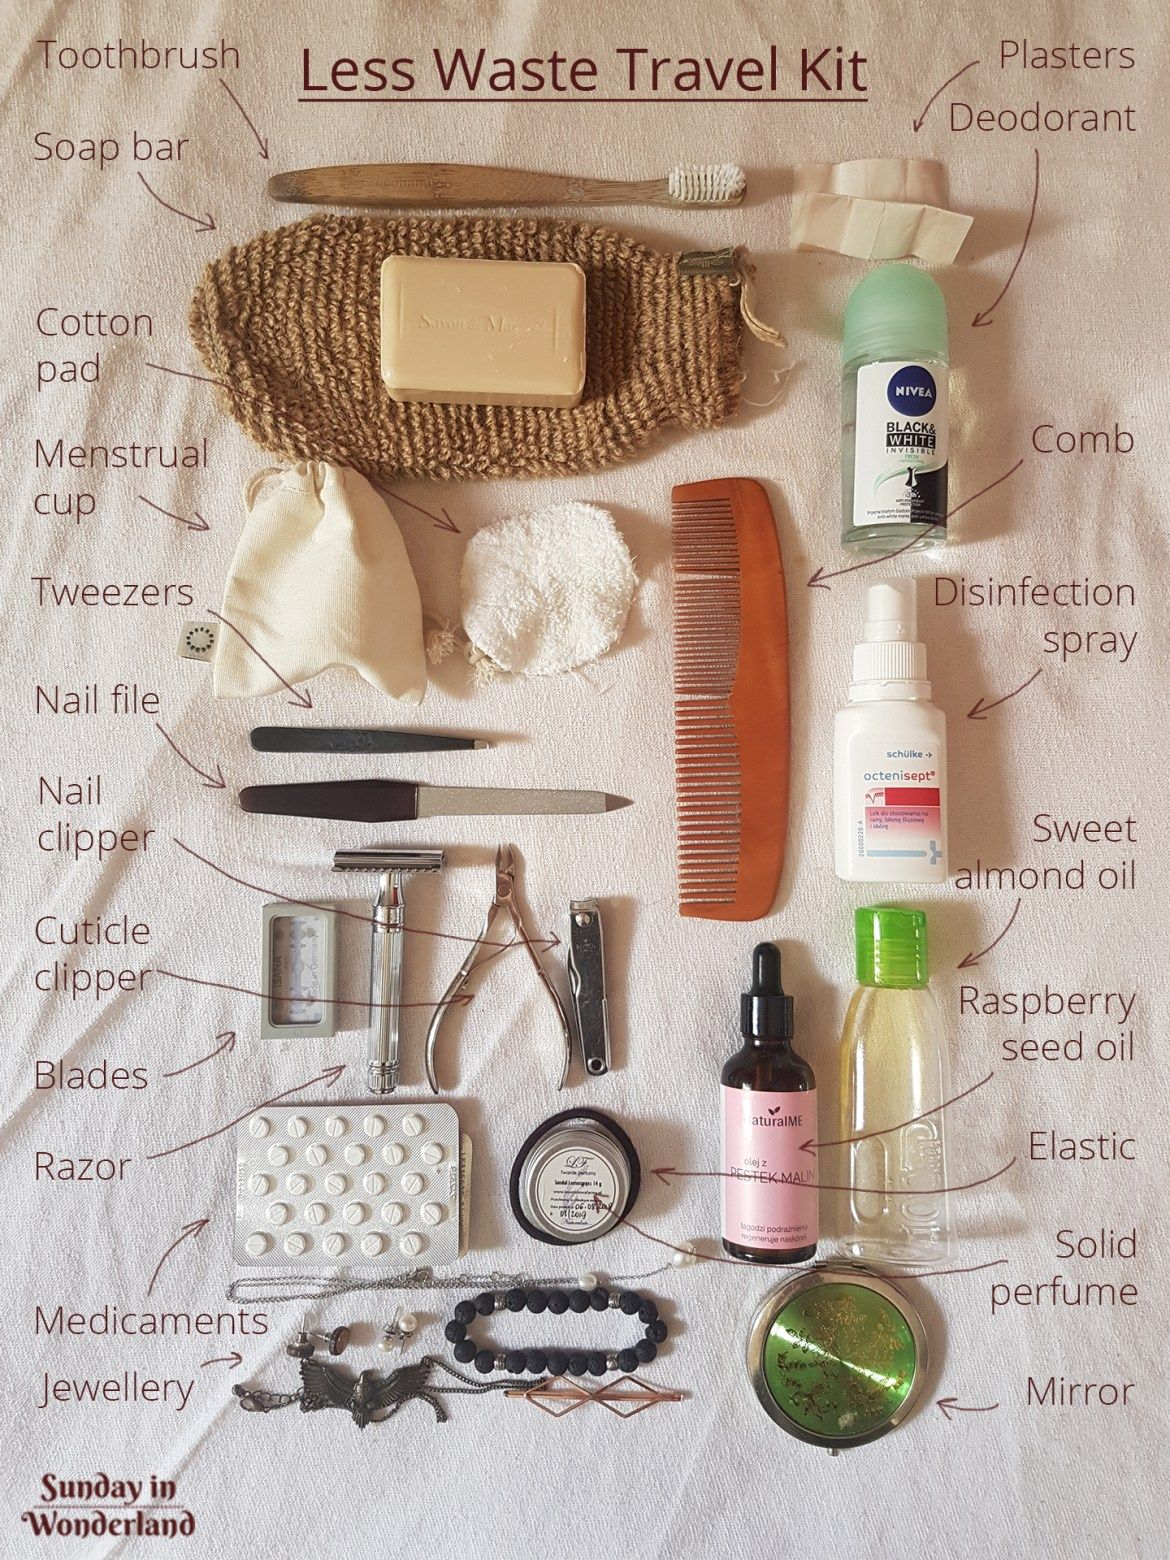 Zero Waste Travel Toiletries Guide